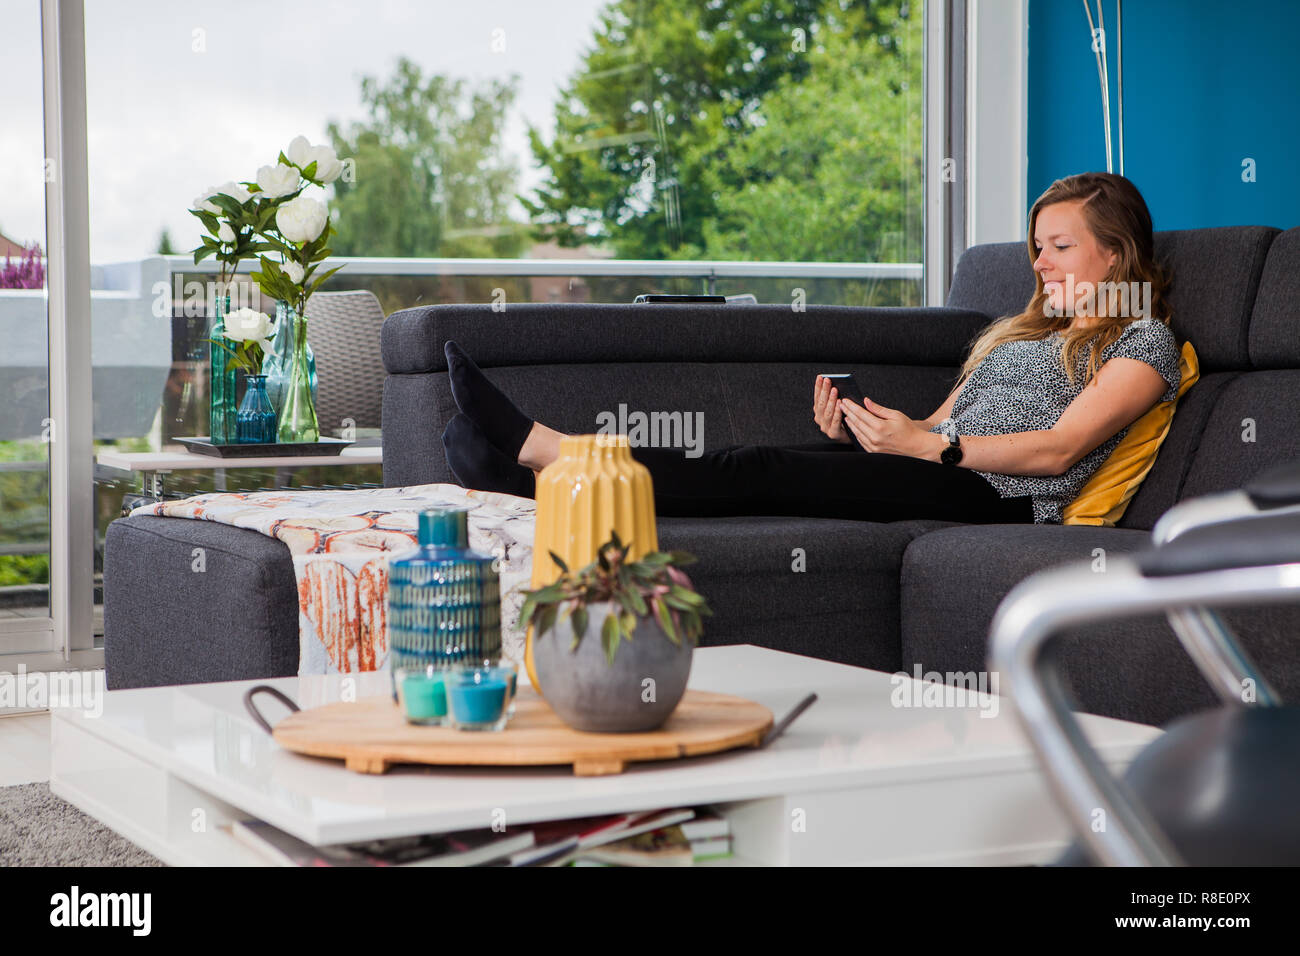 Young woman chilling on the couch reading an ebook - Stock Image